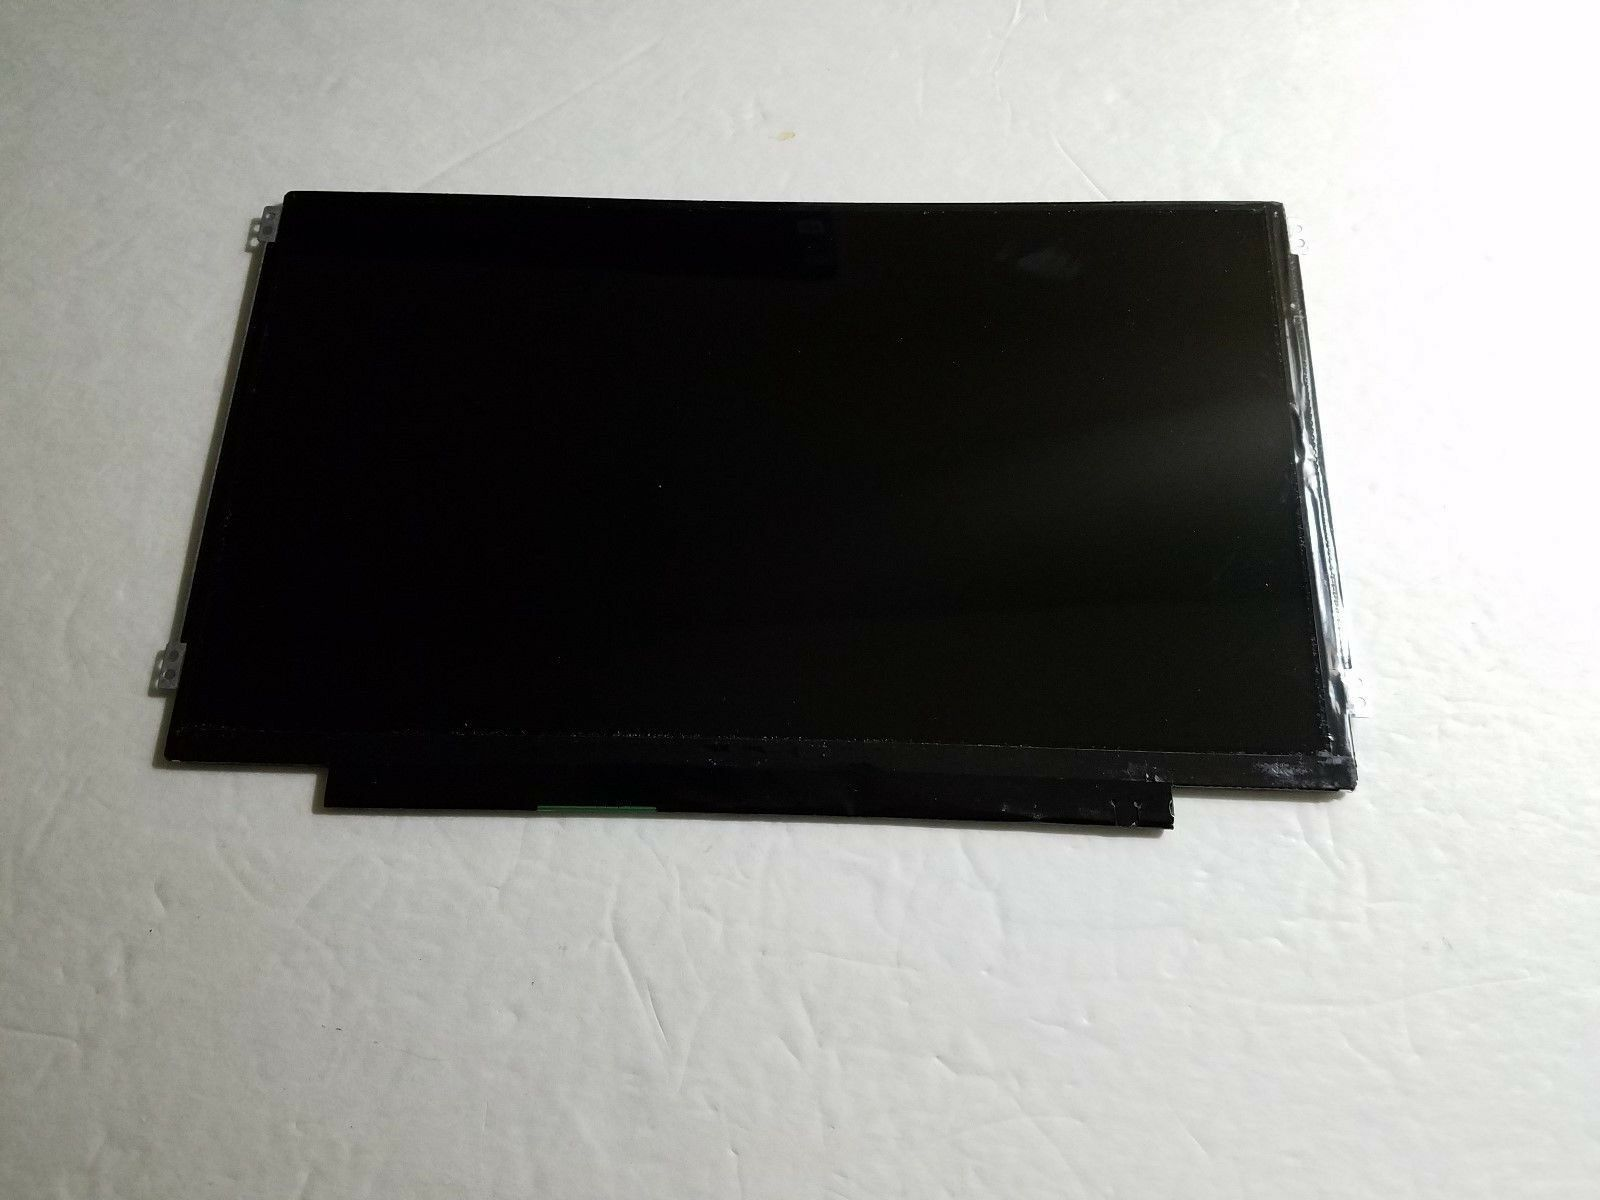 DELL B116XW01 V.0 Alienware M11x Replacement LAPTOP LCD Screen 11.6 WXGA HD LED